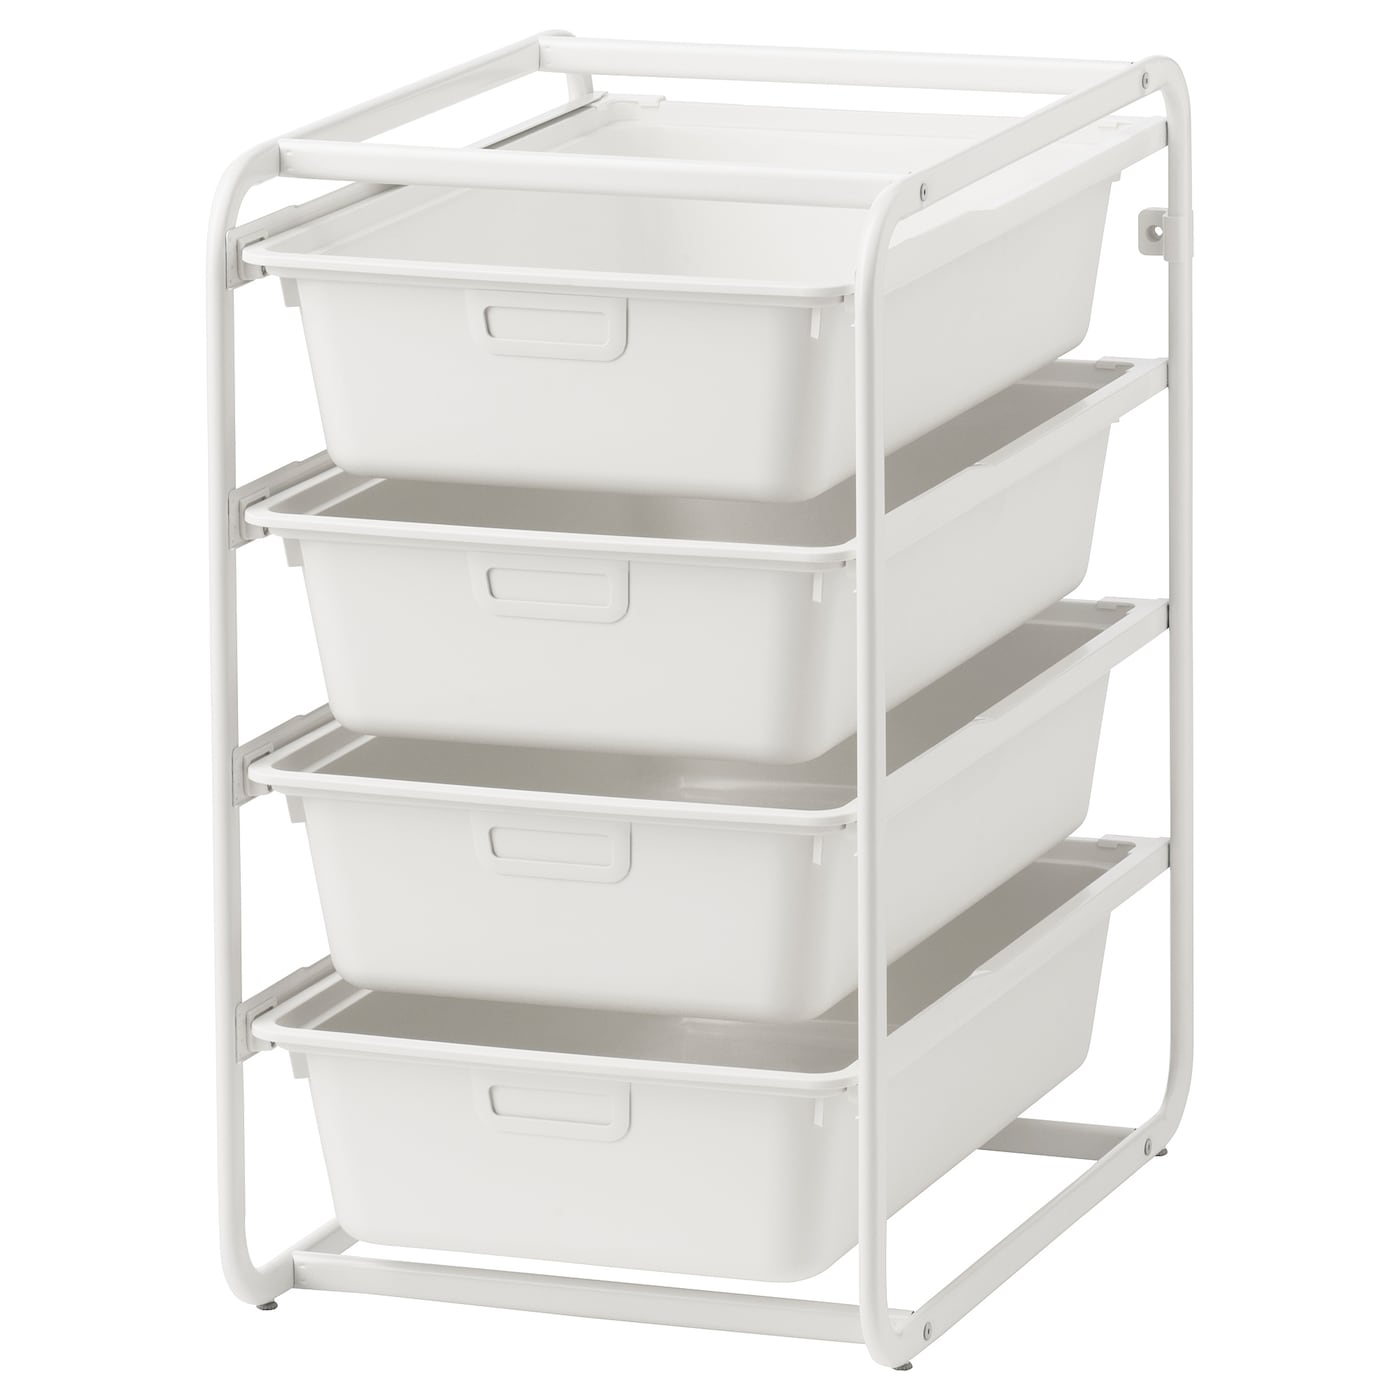 IKEA ALGOT frame with boxes Can also be used in bathrooms and other damp areas indoors.